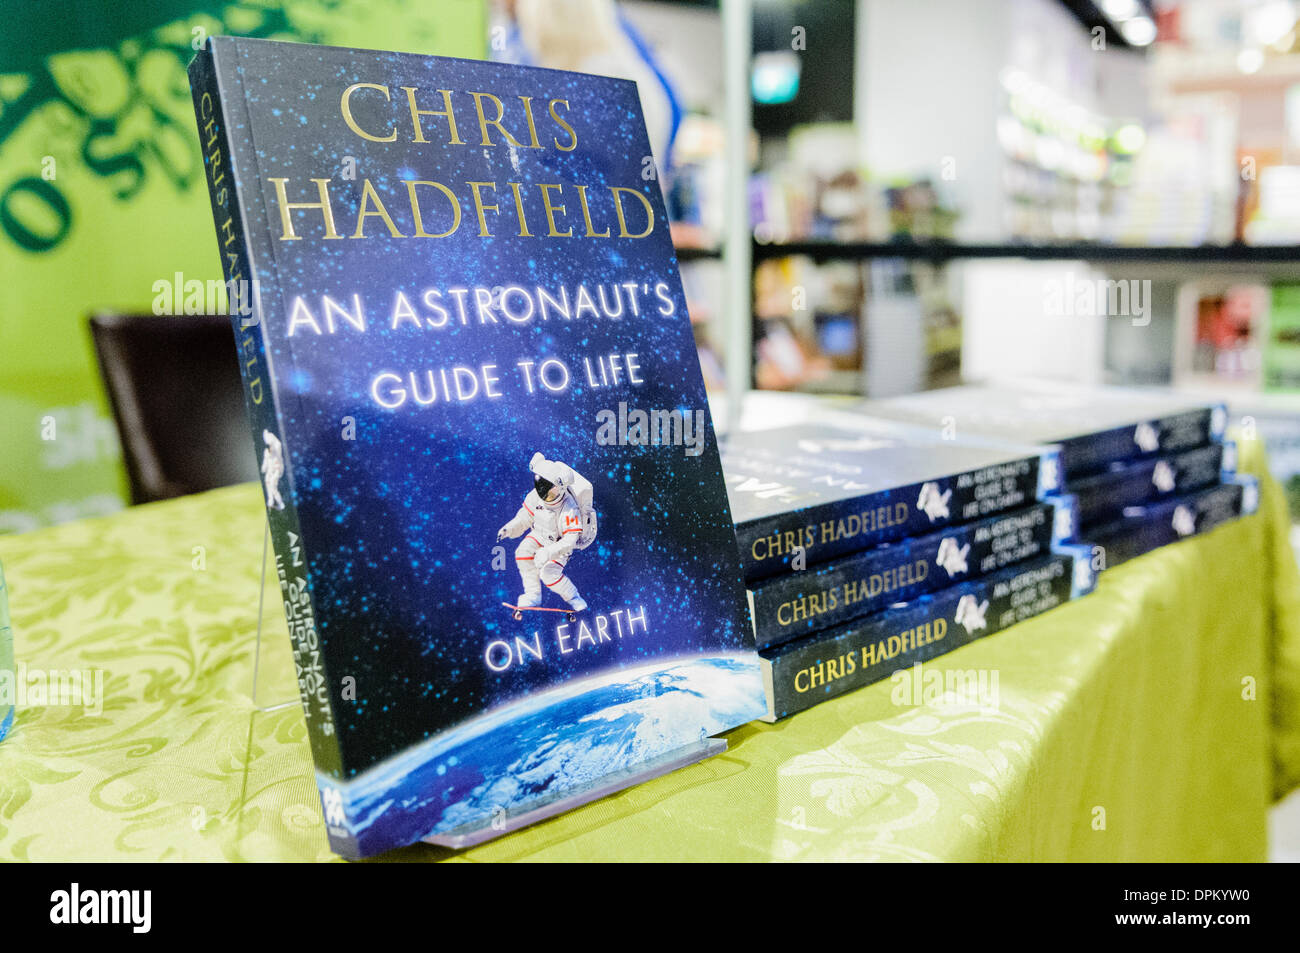 Belfast, Northern Ireland. 14 Jan 2014 - Copies of Commander Chris Hadfield's book 'An Astronaut's Guide to Life on Earth' Credit:  Stephen Barnes/Alamy Live News - Stock Image